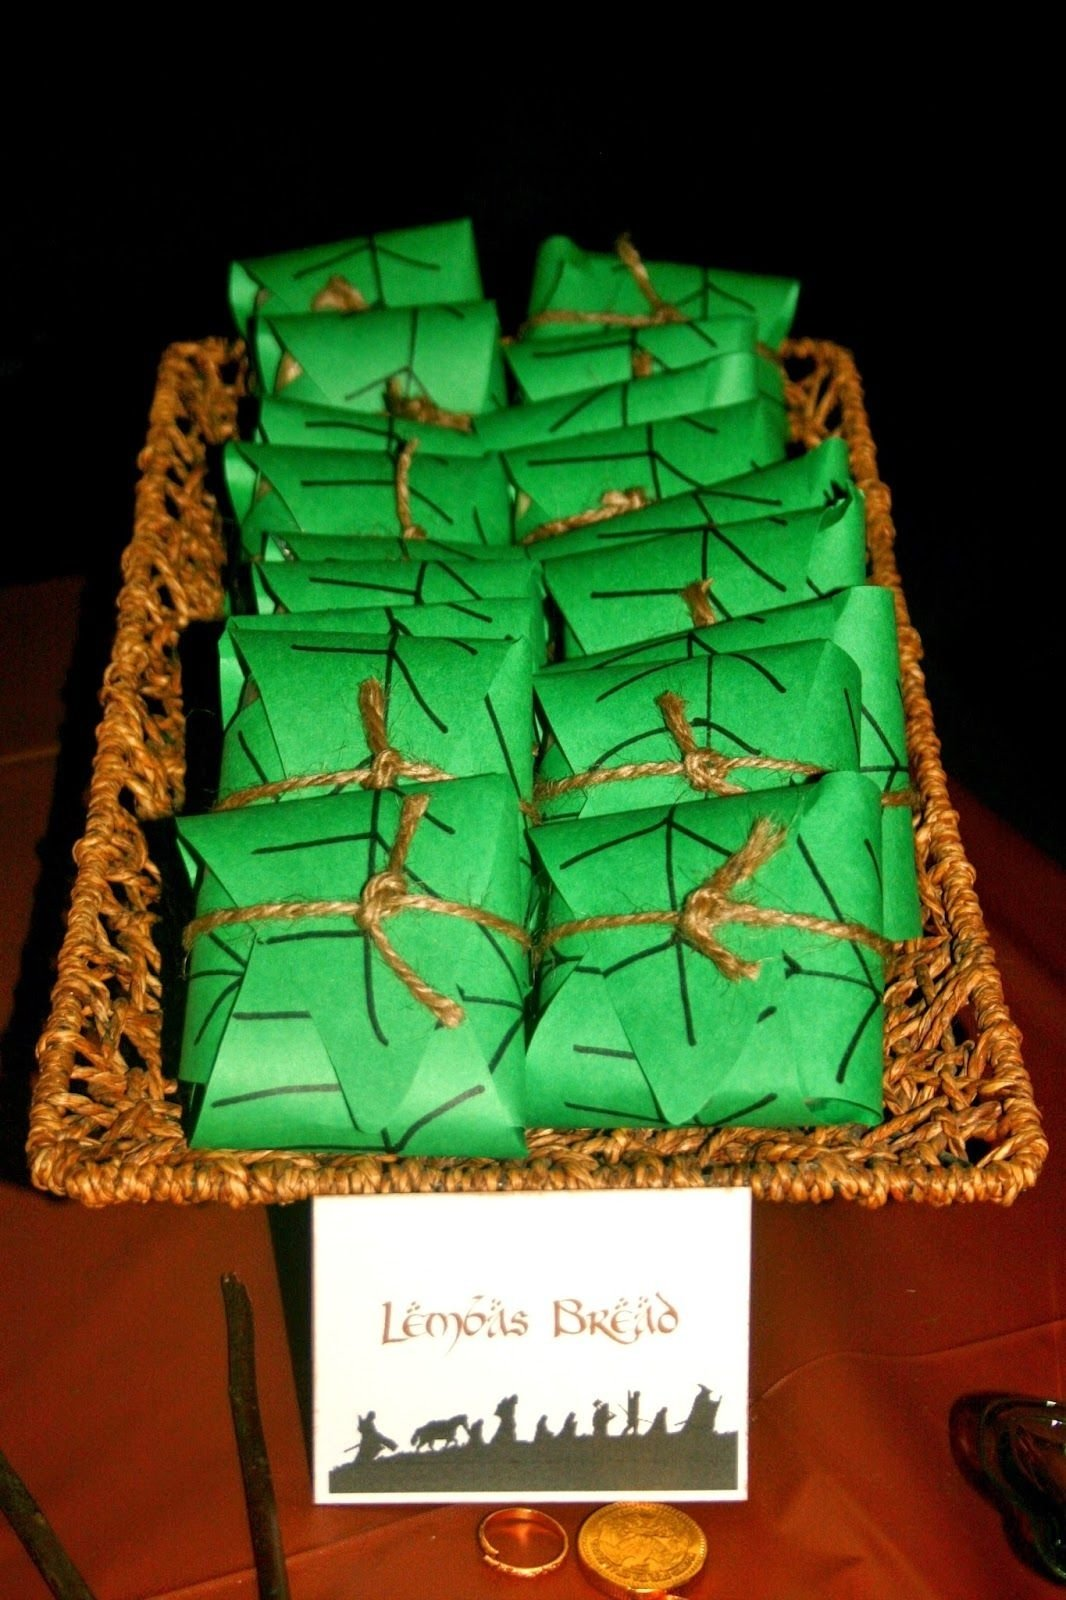 10 Pretty Lord Of The Rings Party Ideas real party lord of the rings lord of the rings party pinterest 2020